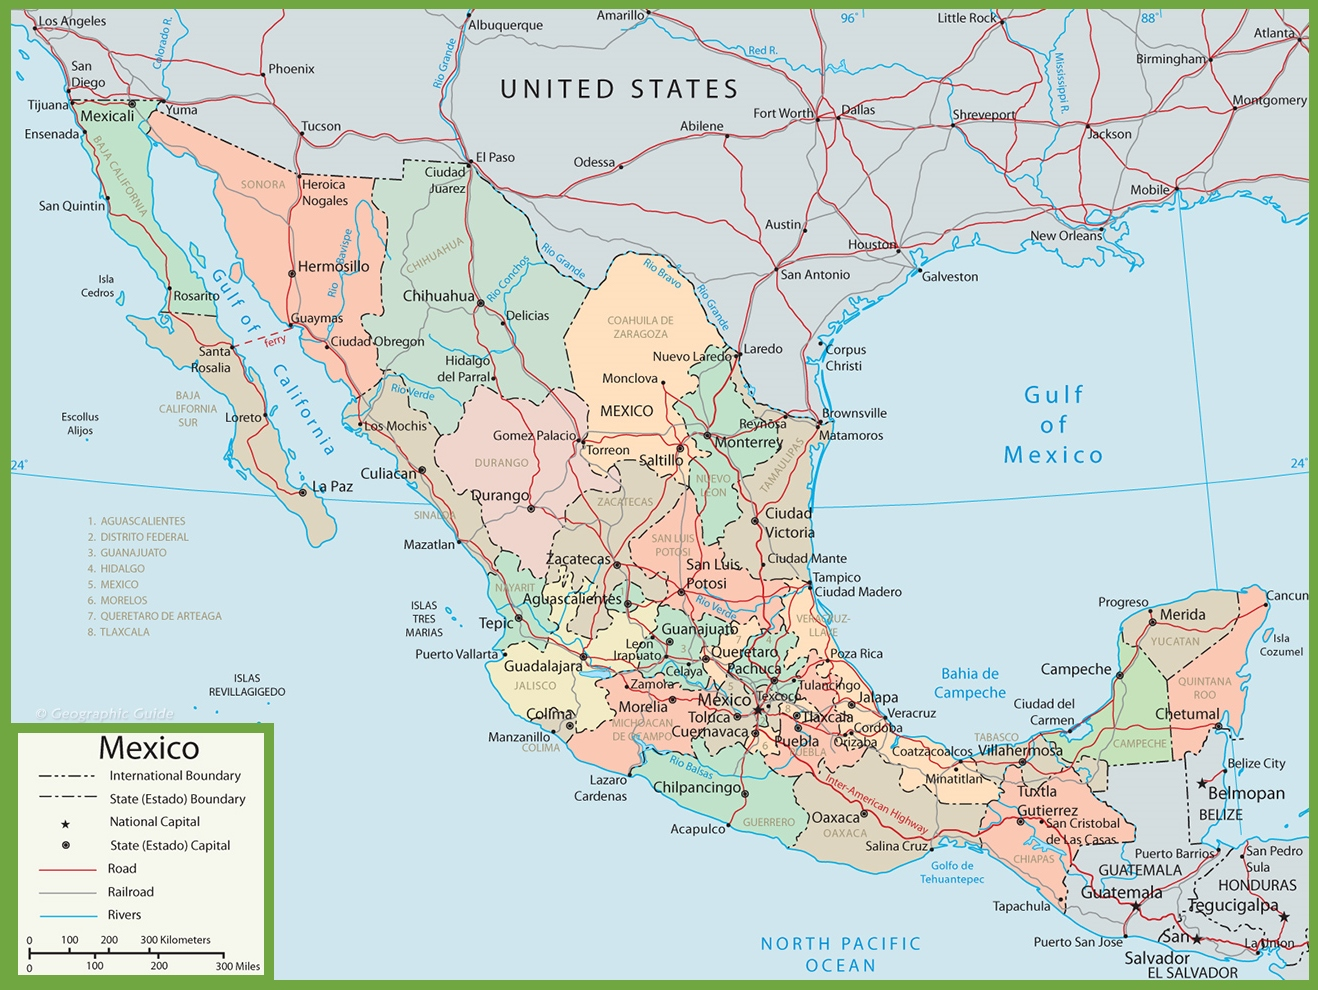 Administrative divisions map of Mexico